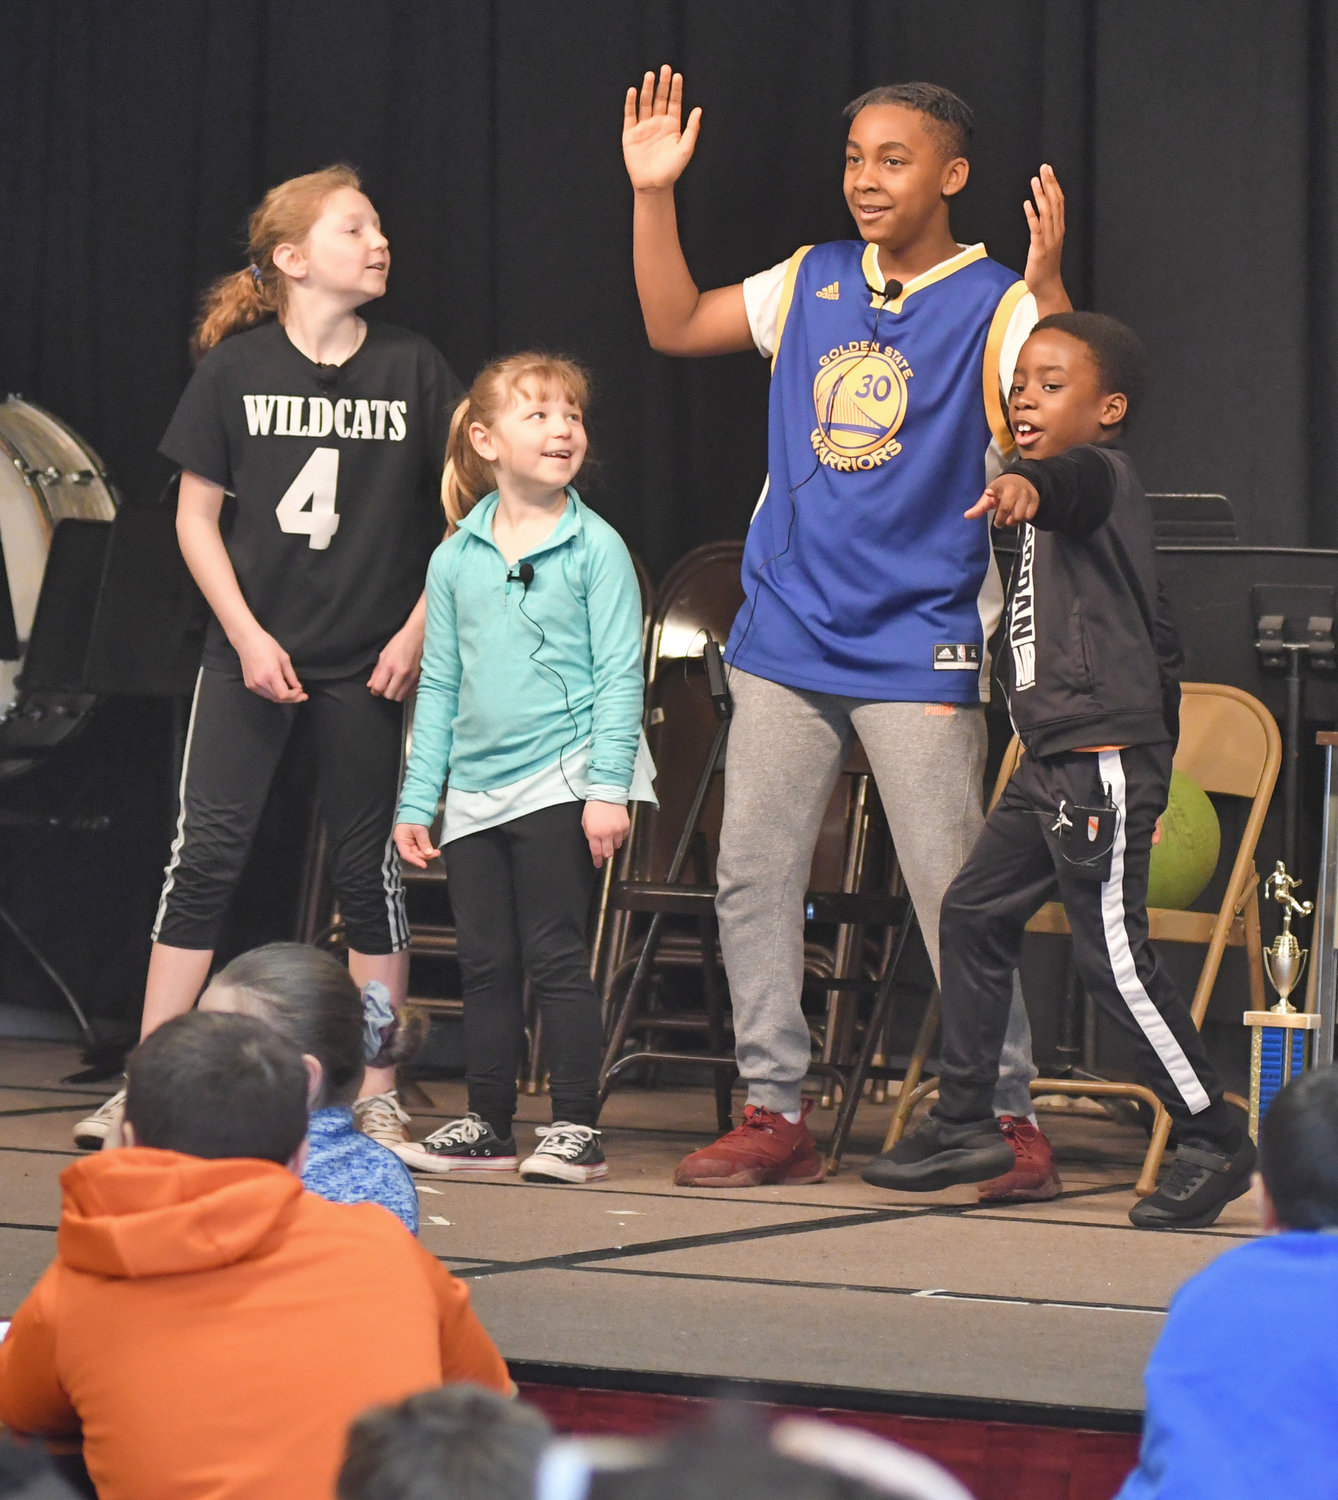 "STUDENT PLAYWRIGHTS AND PERFORMERS — A play called ""One v. One,"" written by Ridge Mills Elementary School sixth-graders Isabella O'Rourke and Isiah DeJean, is performed by them with versions of their ""younger selves,"" played by first-graders Livia O'Rourke and Boluwarin Adeyeye, on Thursday at the school as they sing ""Stand by Me."" As part of a sixth-grade writing project whose theme involved paying it forward and acts of kindness, students produced literary works in genres such as historical fiction, realistic fiction, poetry and plays after reading the book ""Paying it Forward"" by Catherine Ryan Hyde. Among those implementing the project were sixth-grade teachers Sue Kaier and Kristin King along with resource teacher Tom Gates."